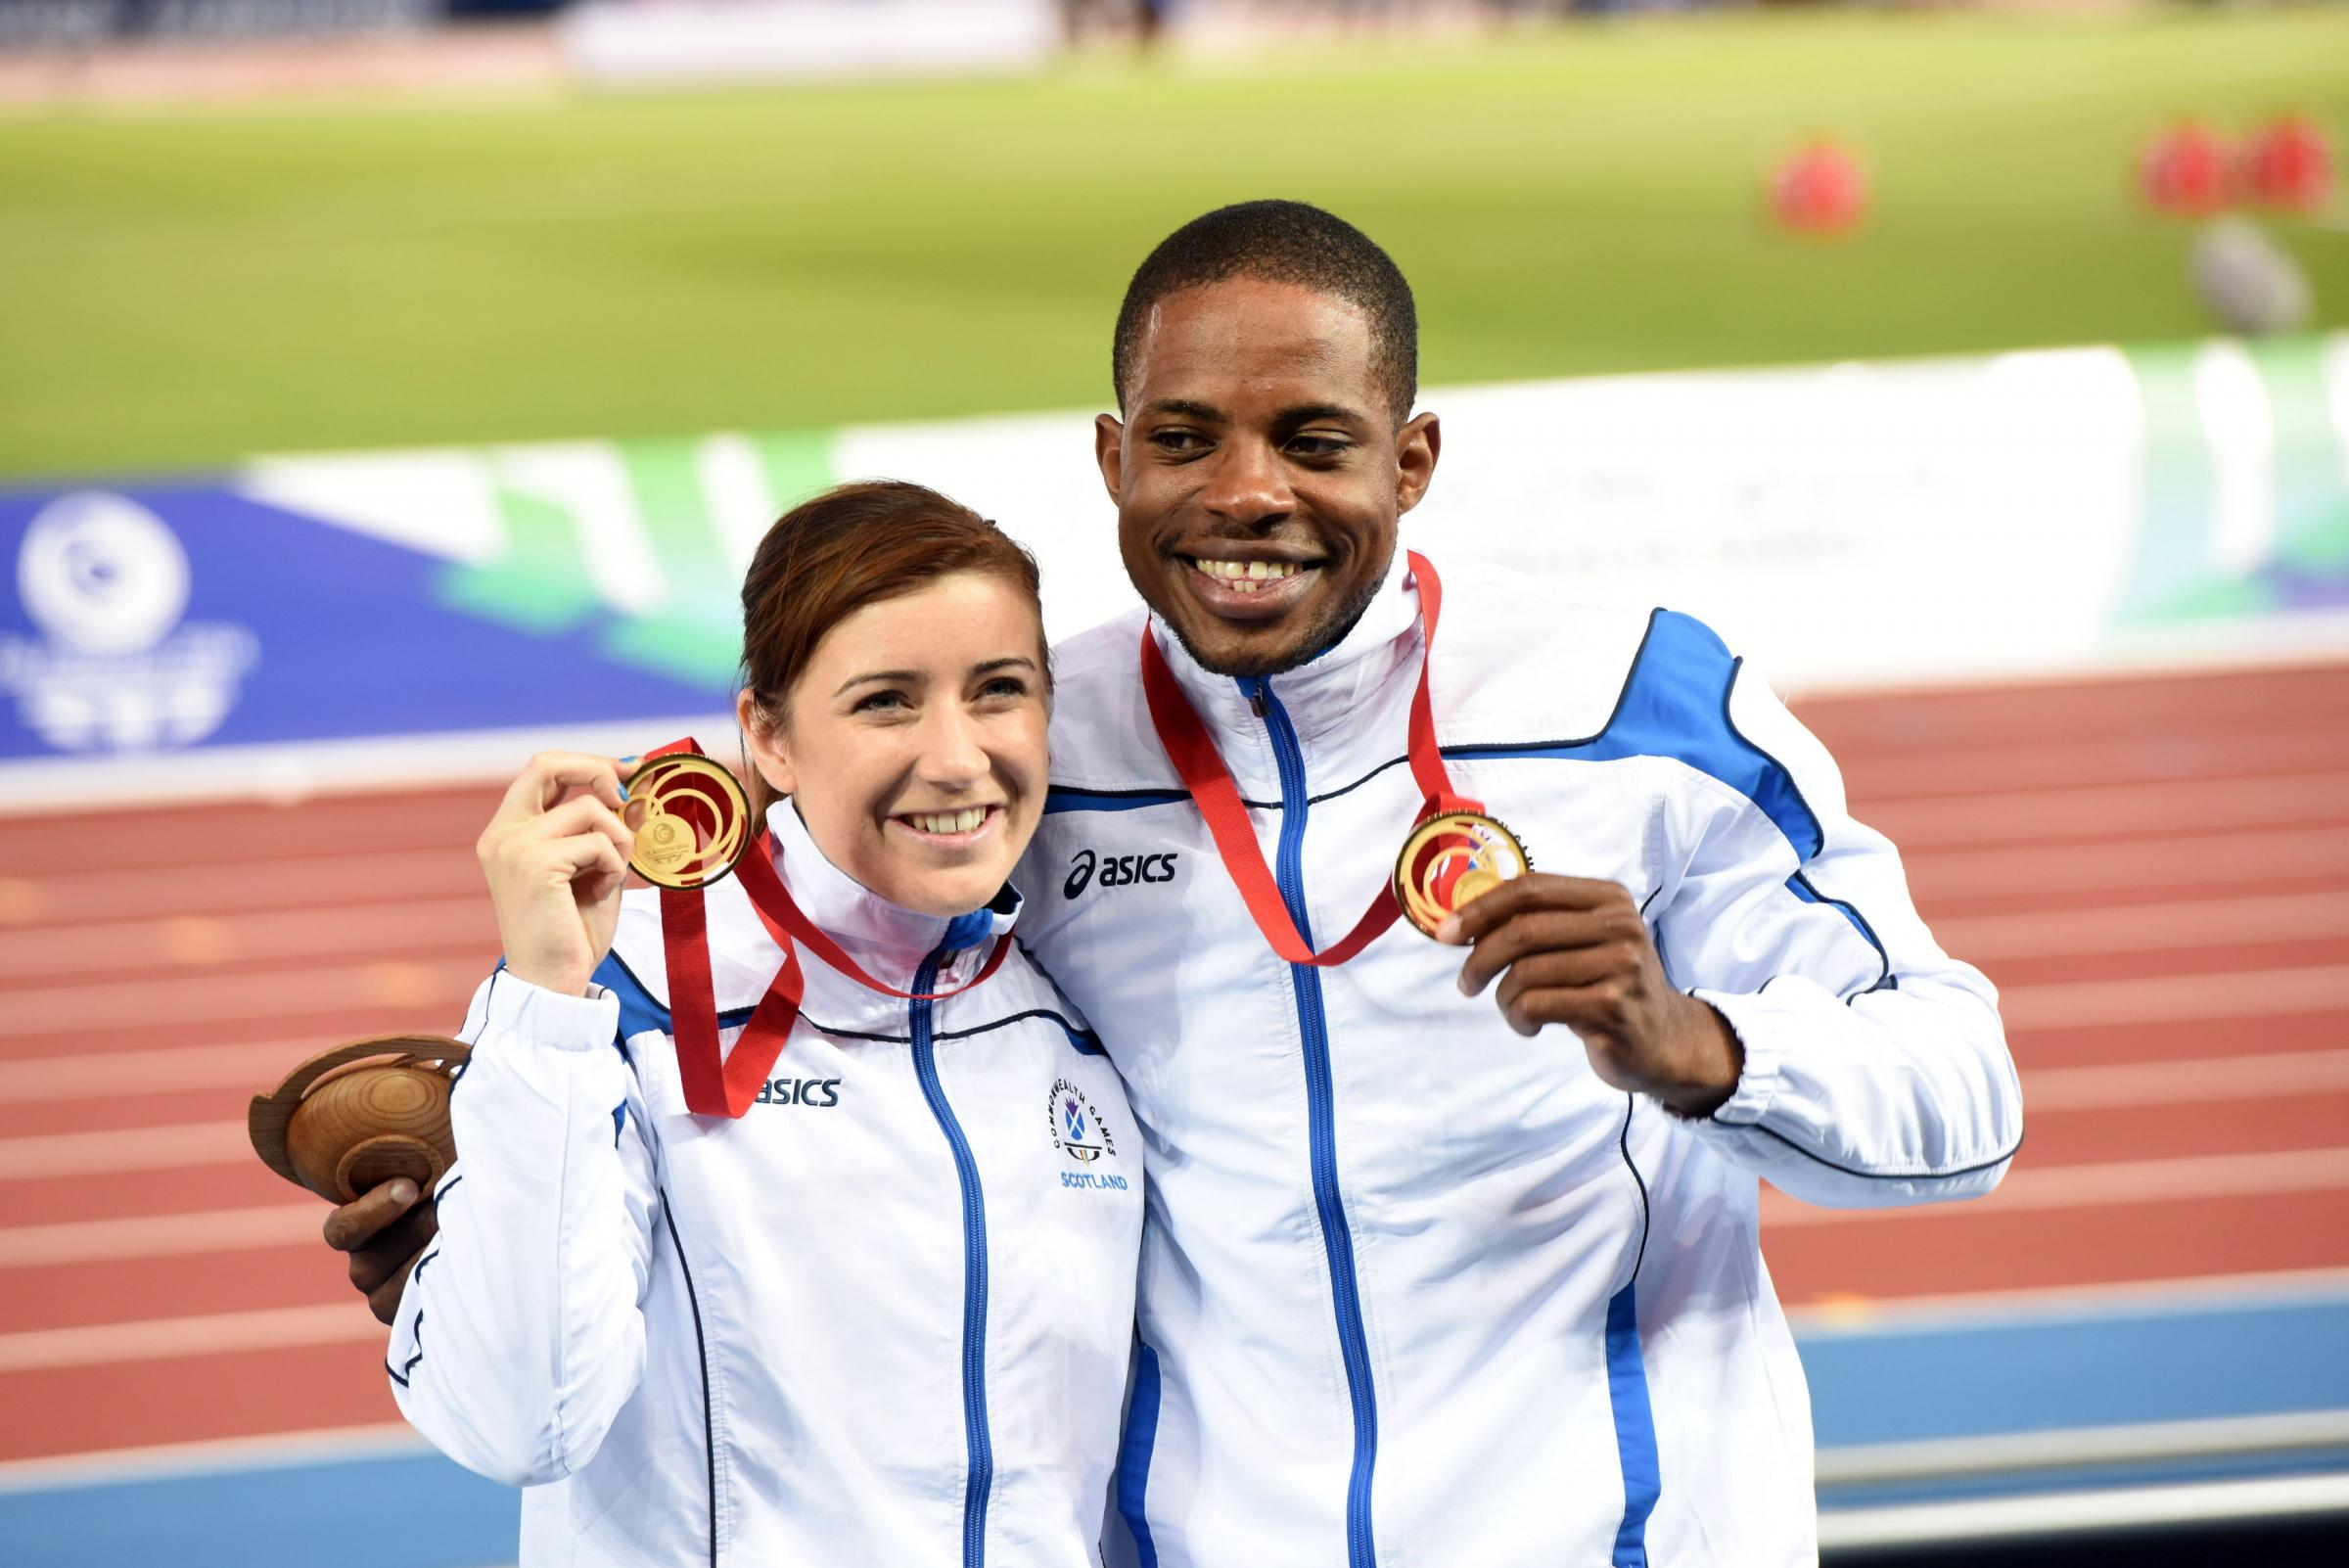 Libby Clegg with her guide